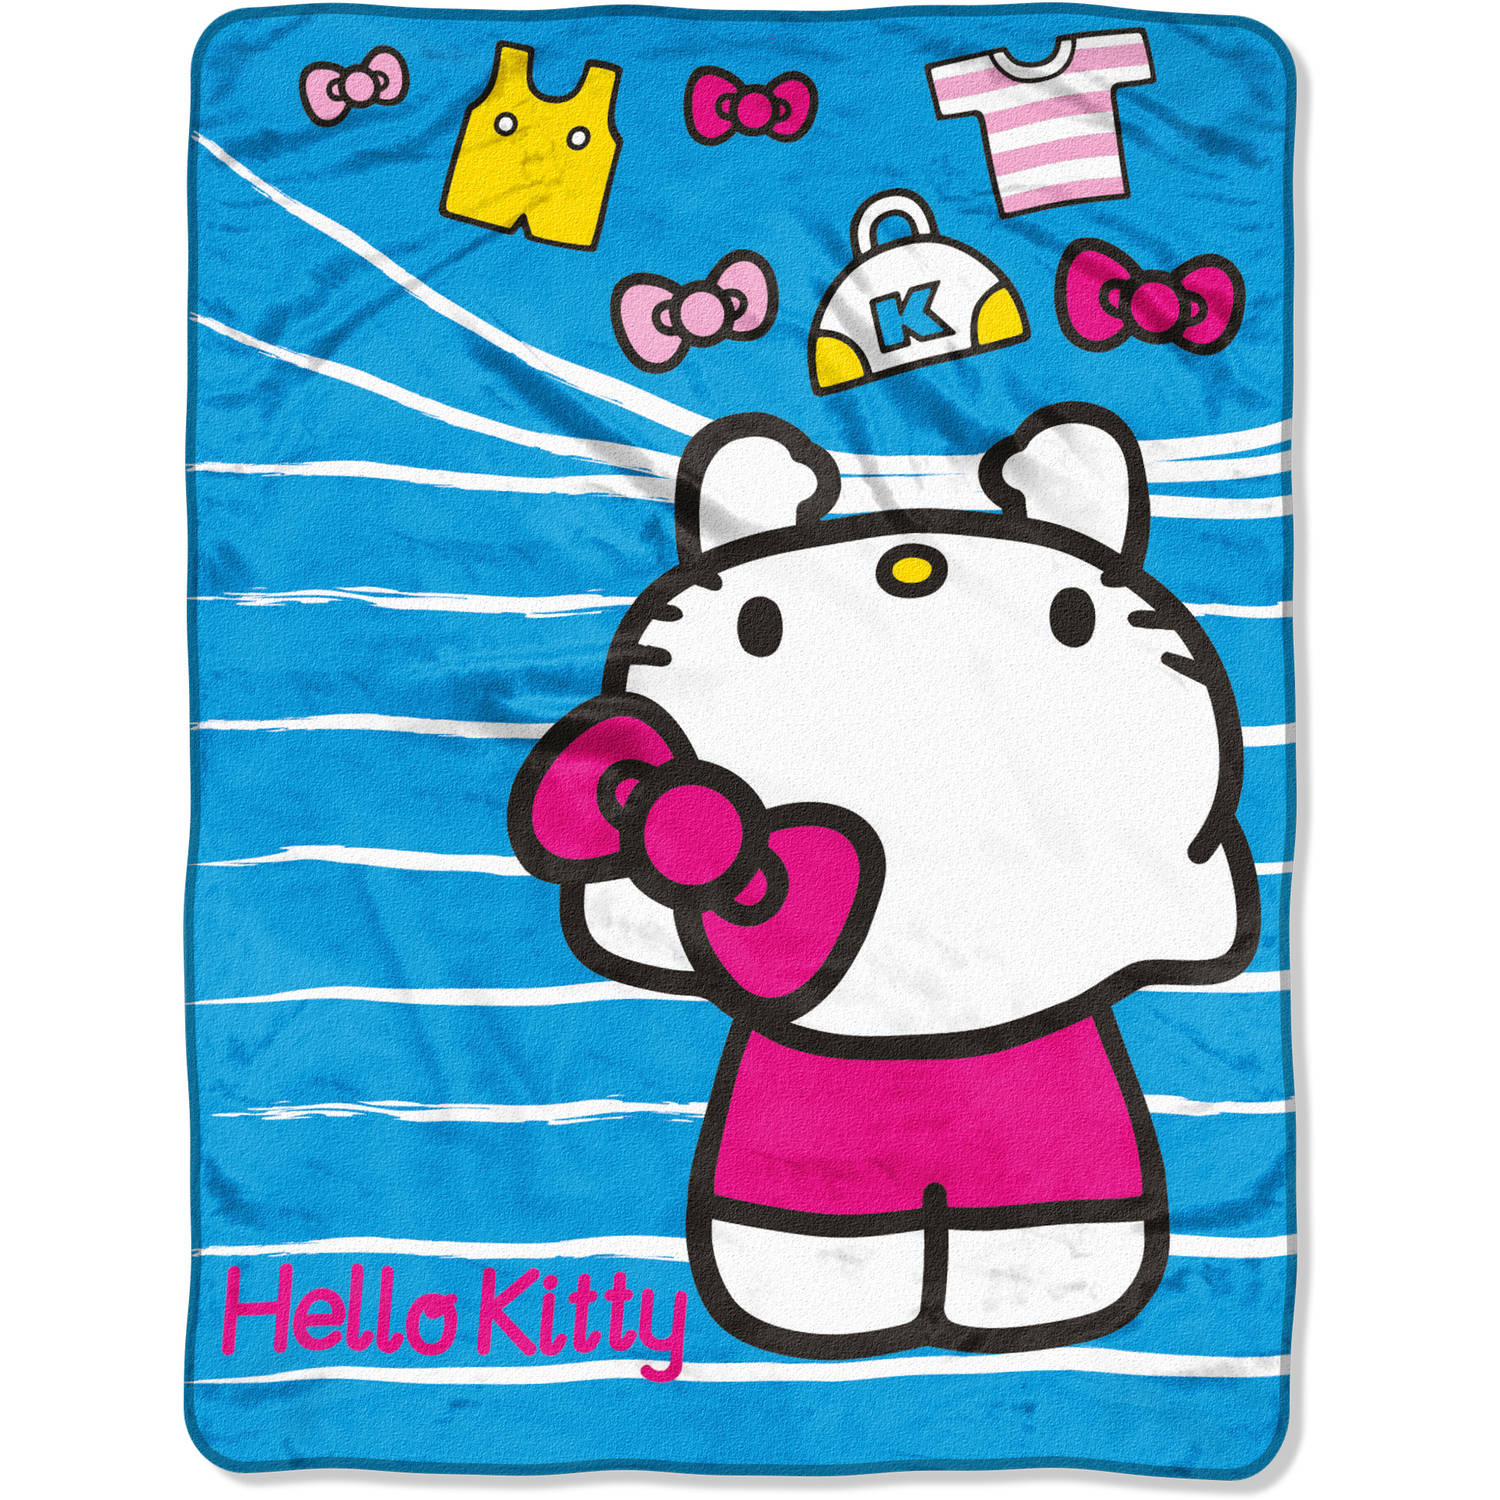 "Sanrio's Hello Kitty ""Hanging Out"" 46"" x 60"" Micro Raschel Throw"